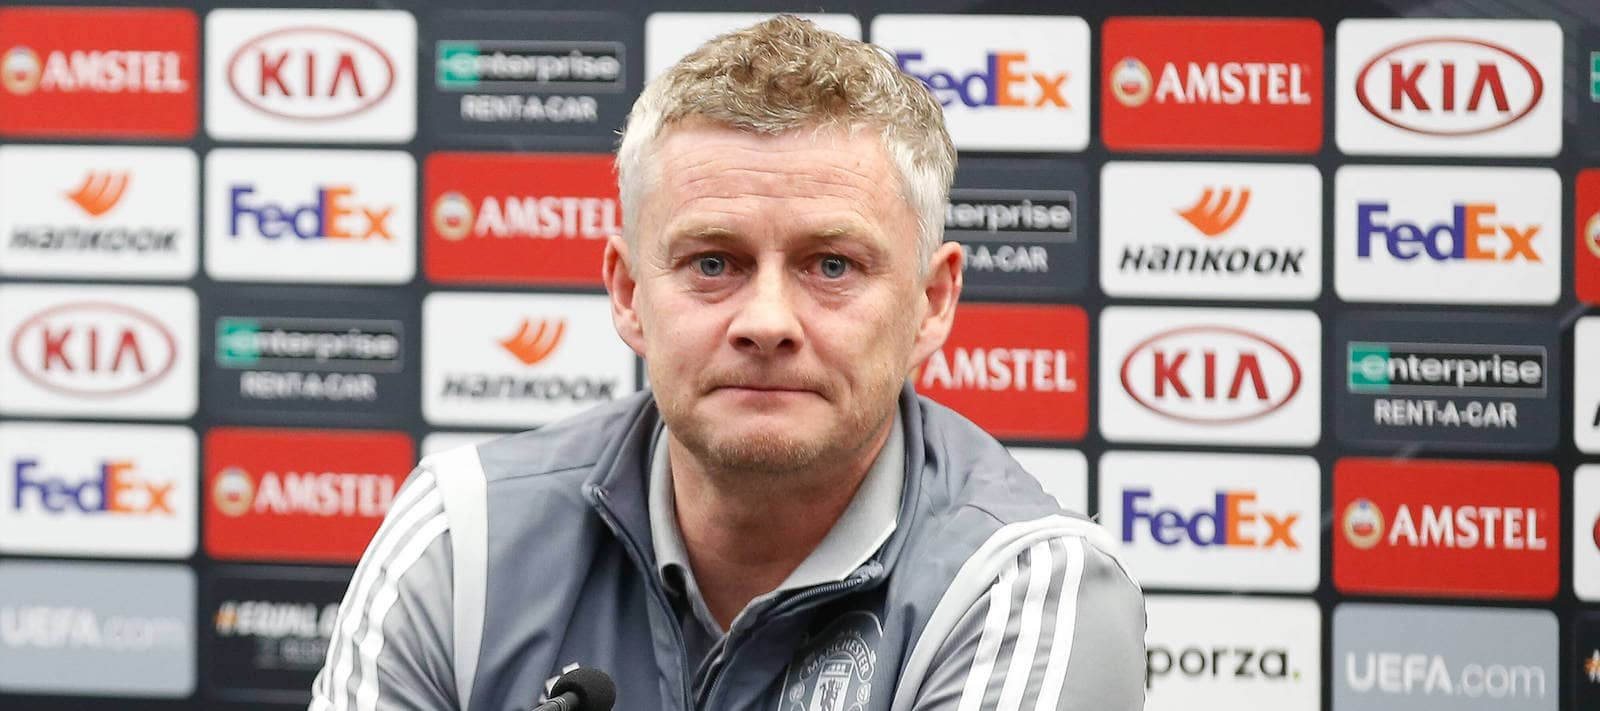 Brace yourself: Ole Gunnar Solskjaer needs a miracle over the coming month